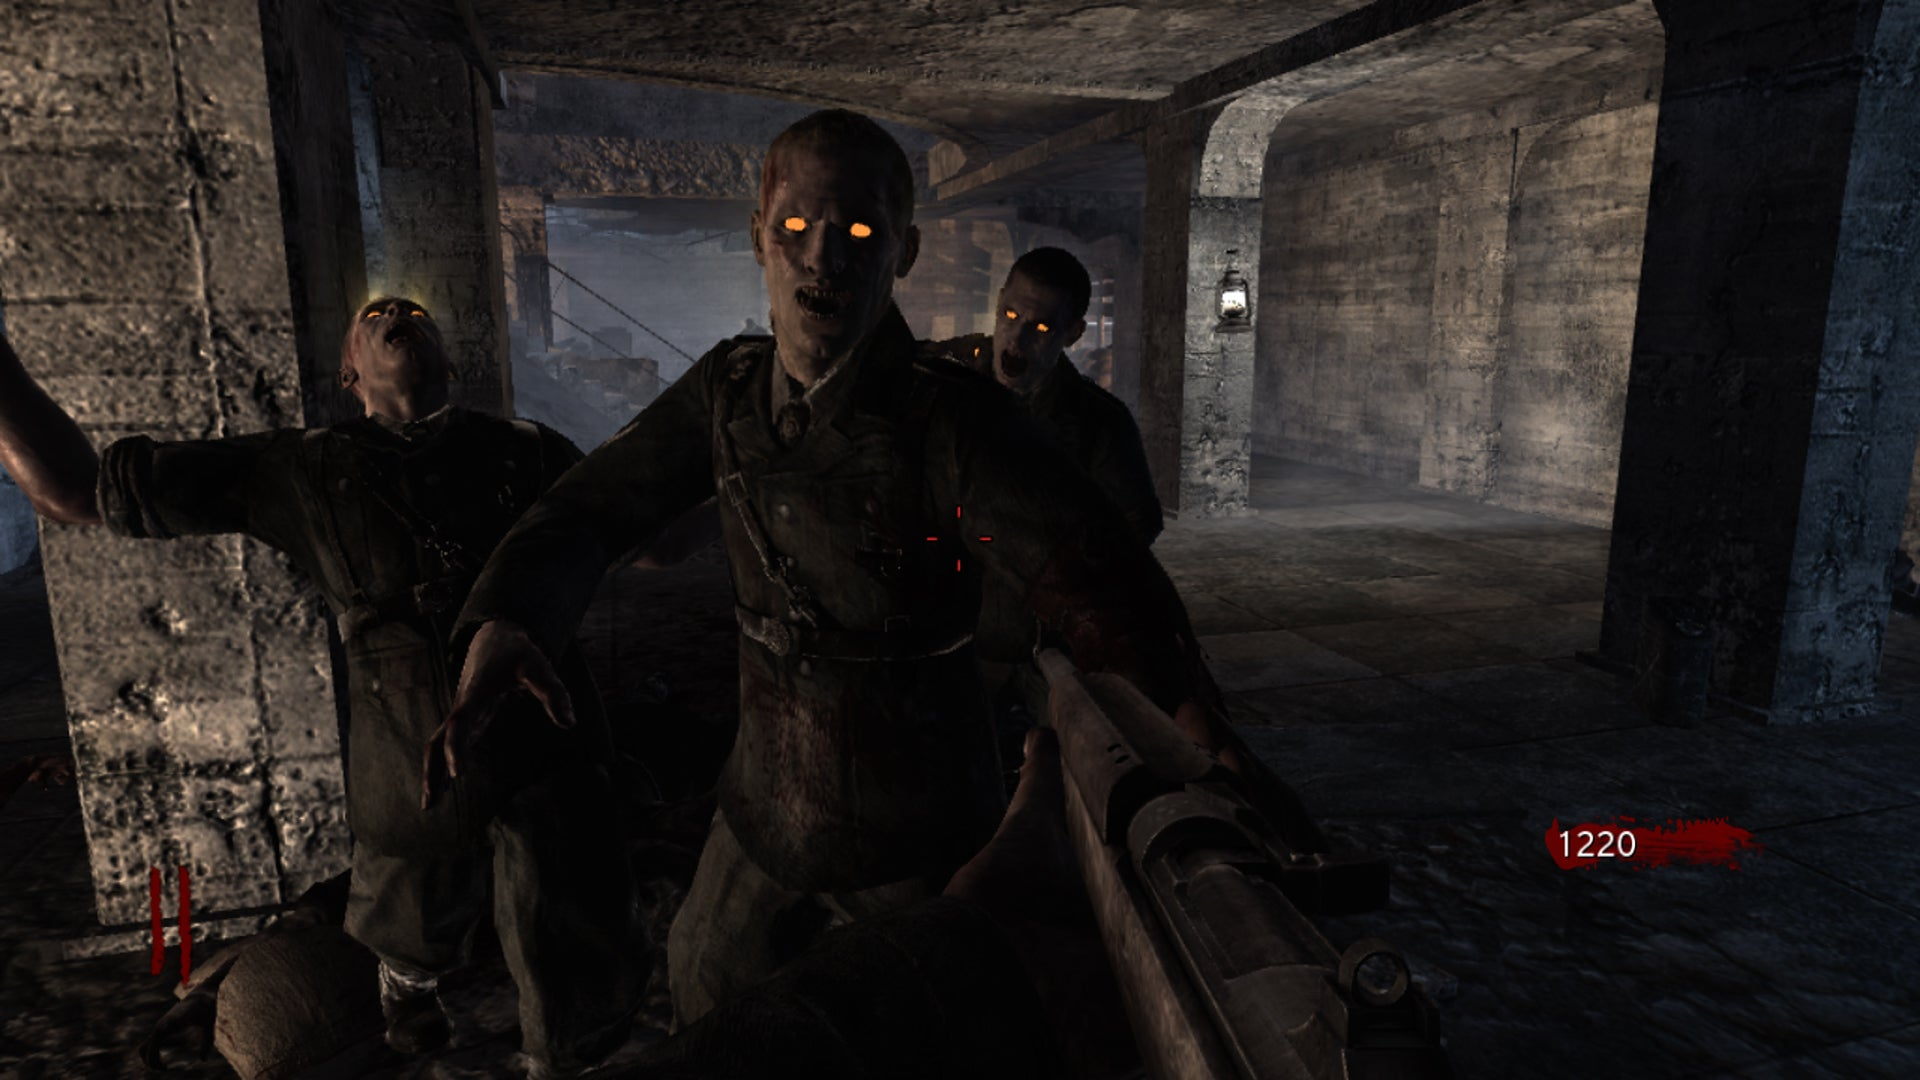 Hackers Aside, Call Of Duty: World At War Is Still Gruesome Fun ...